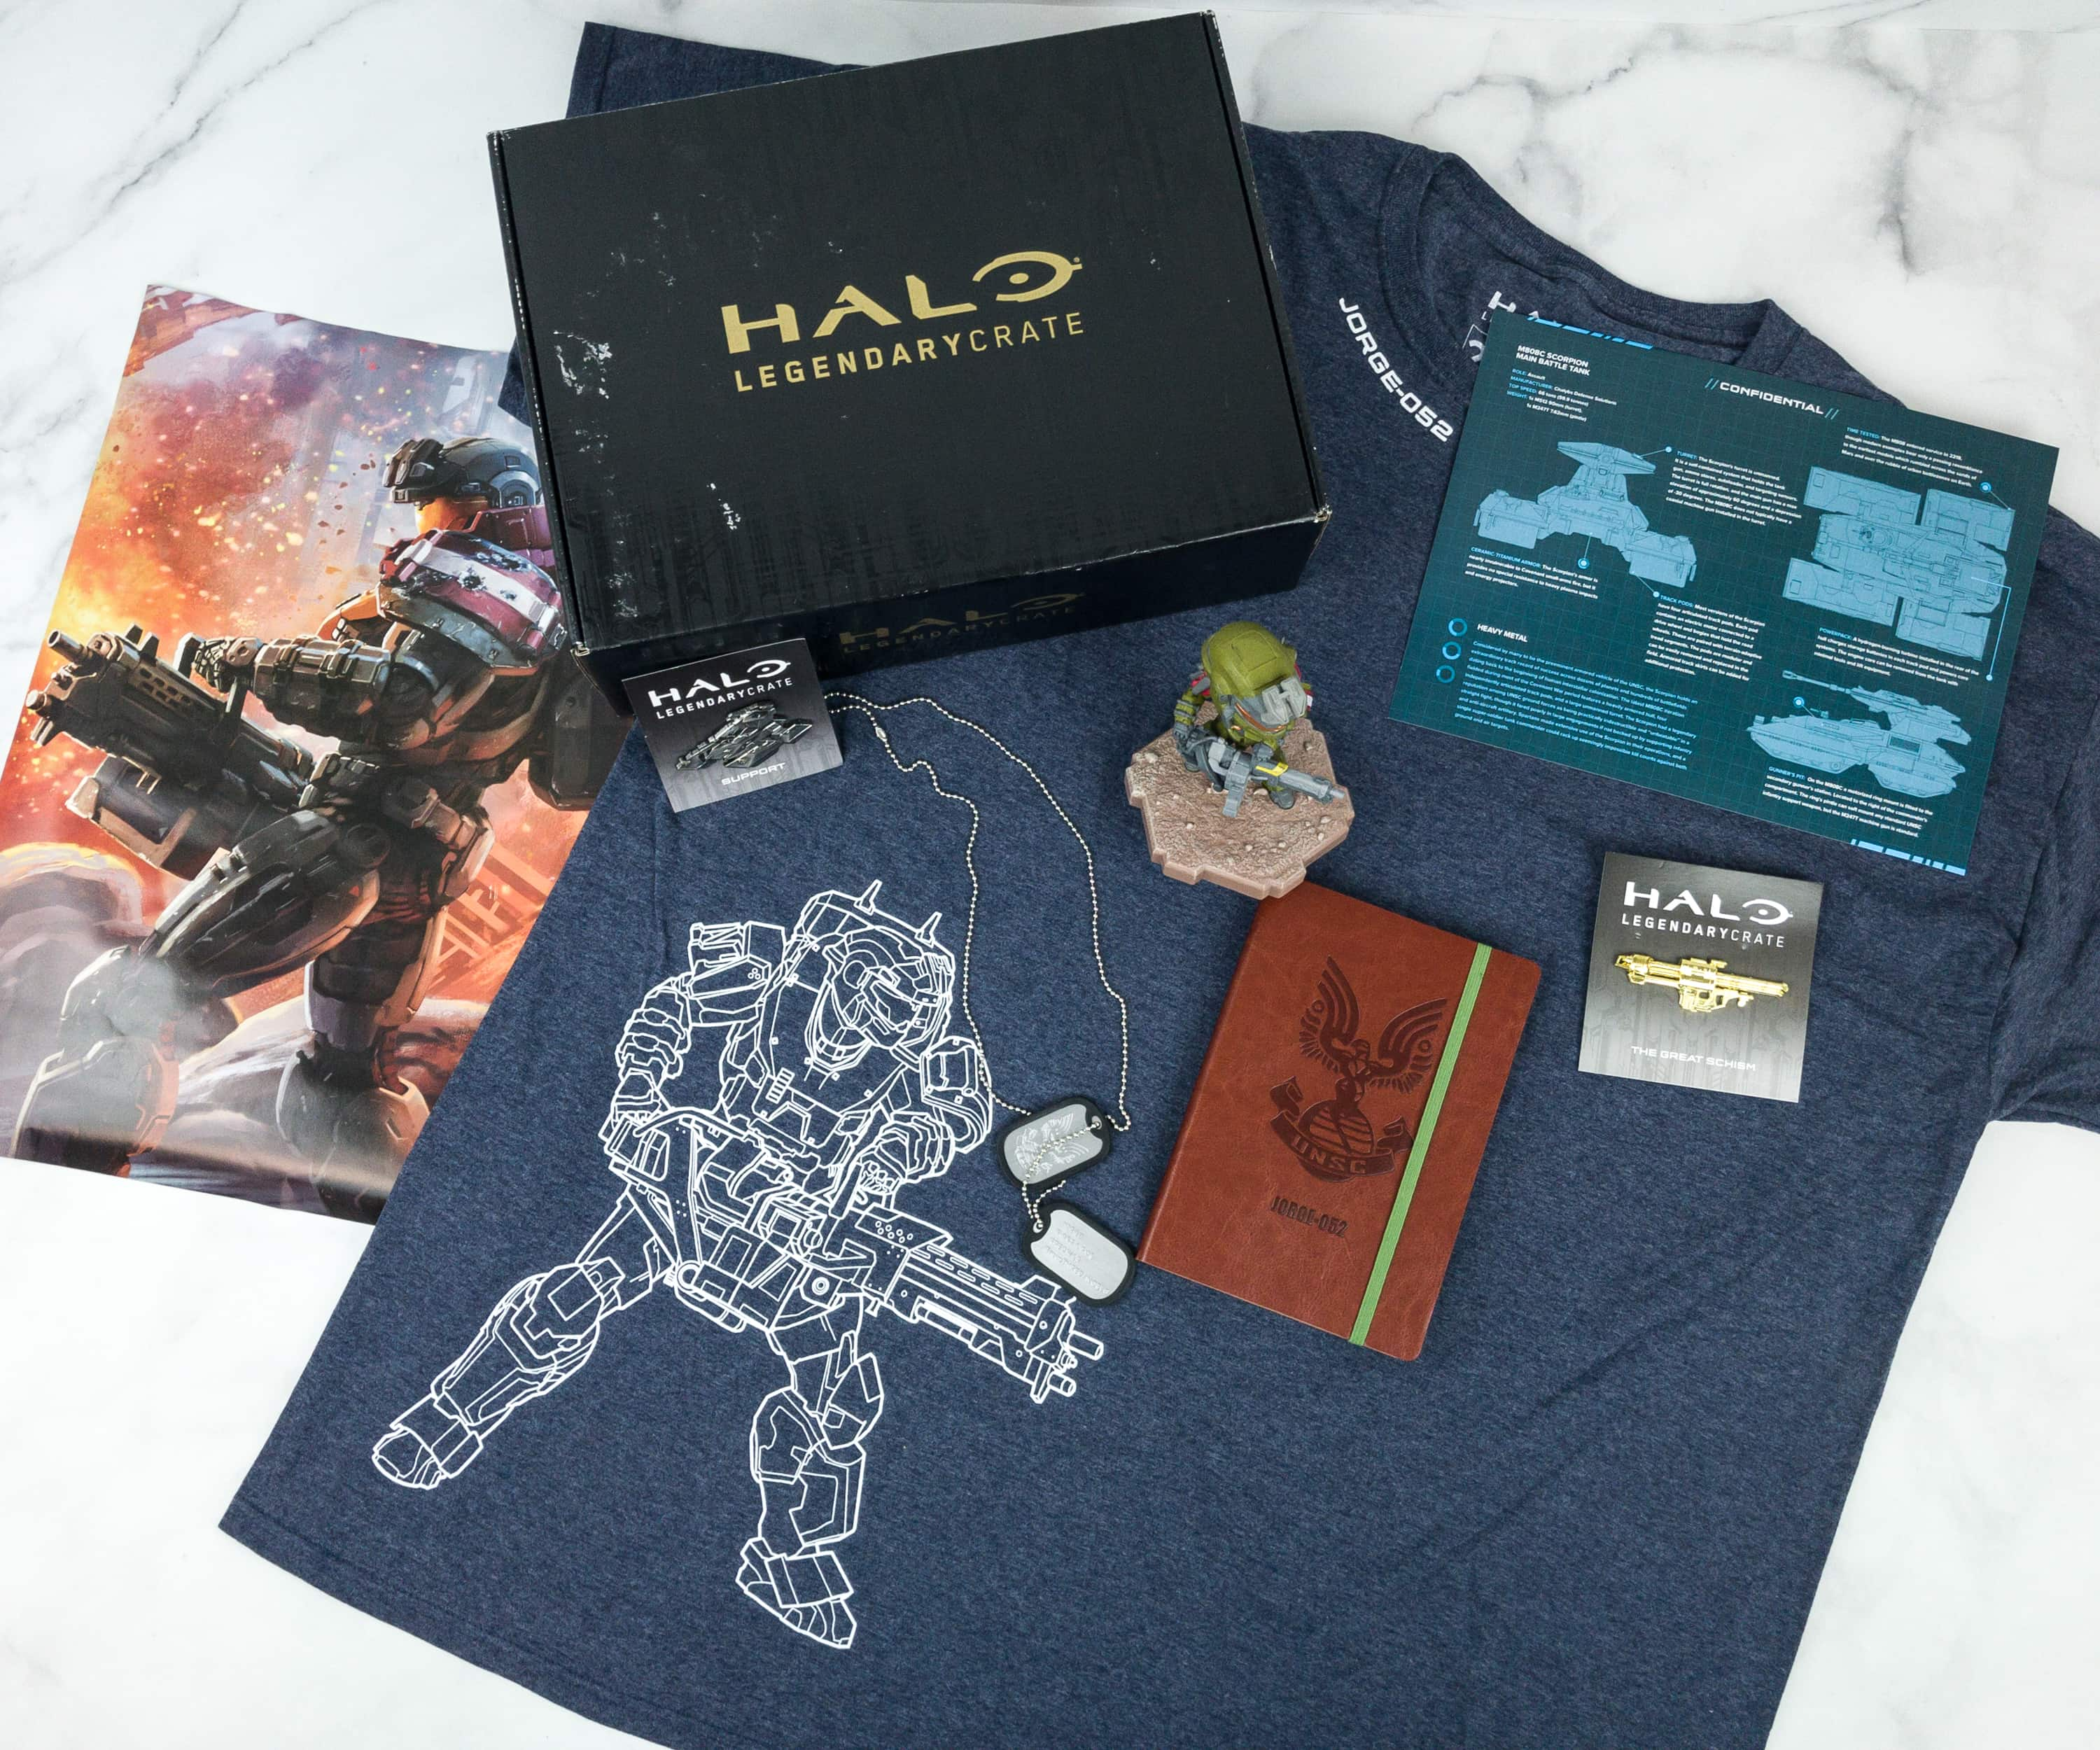 Halo Legendary Crate December 2018 Subscription Box Review + Coupon